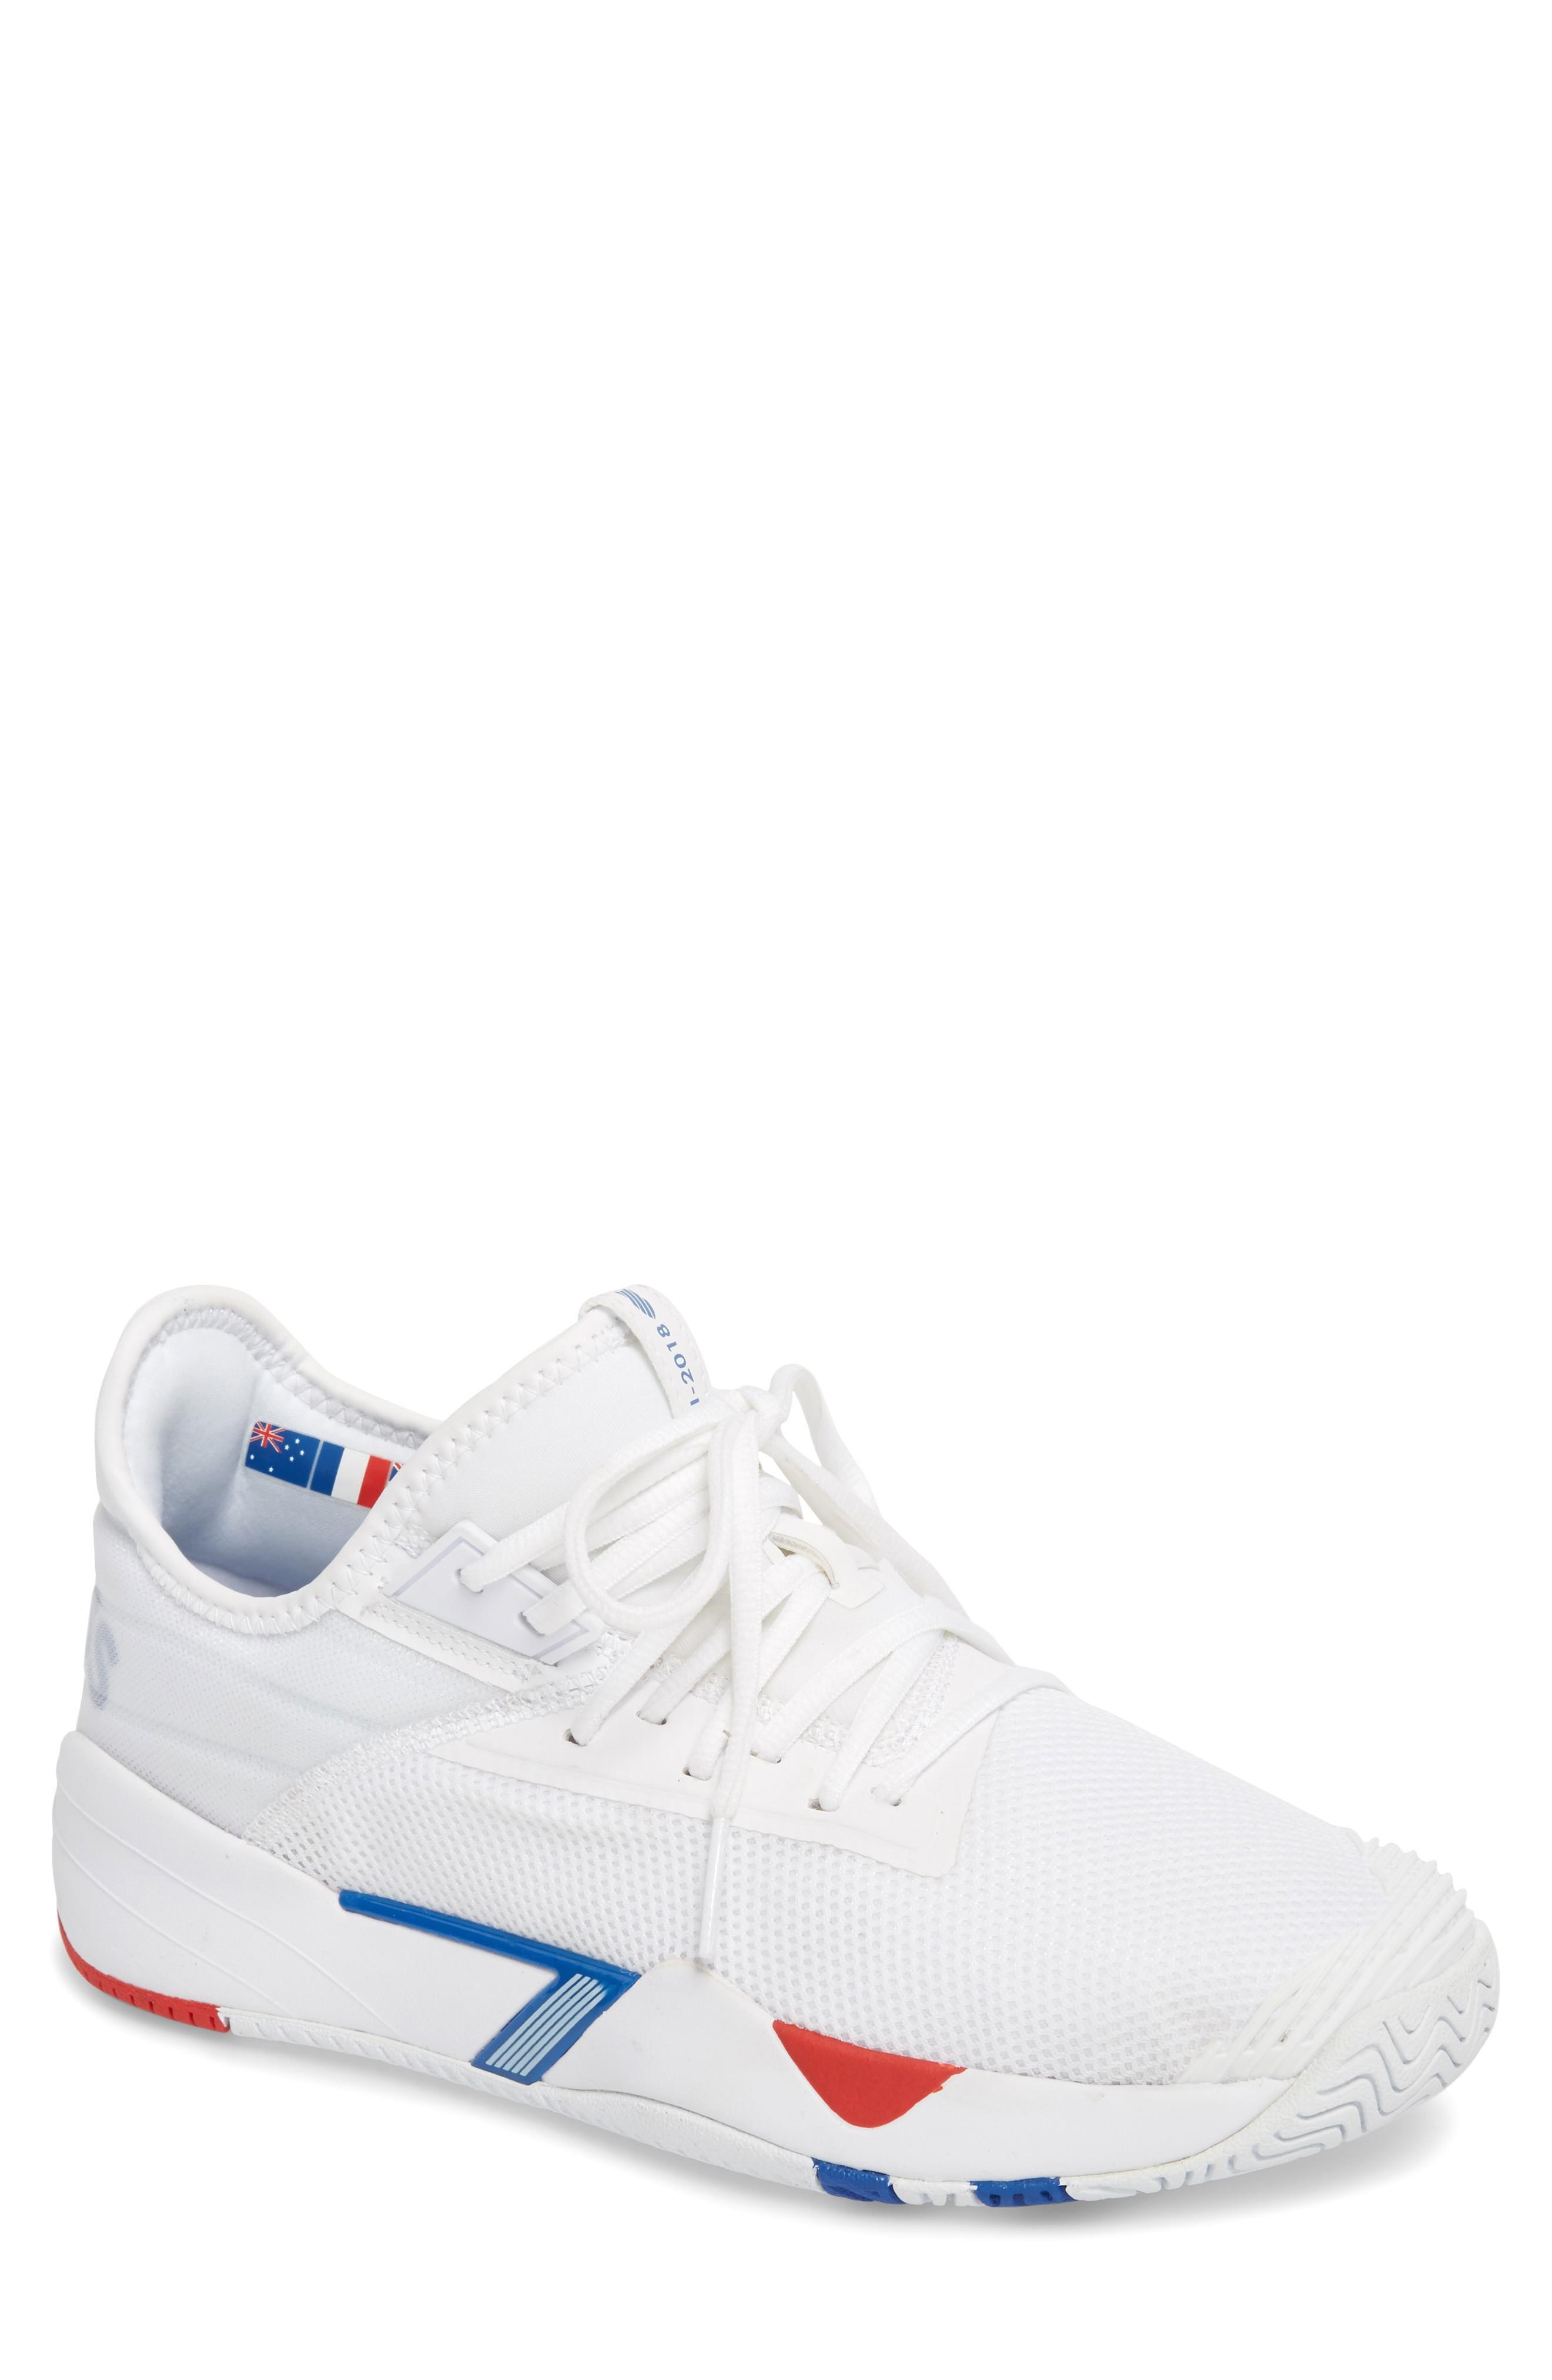 K-swiss Si-2018 Mid Top Sneaker In White/strong Blue/red